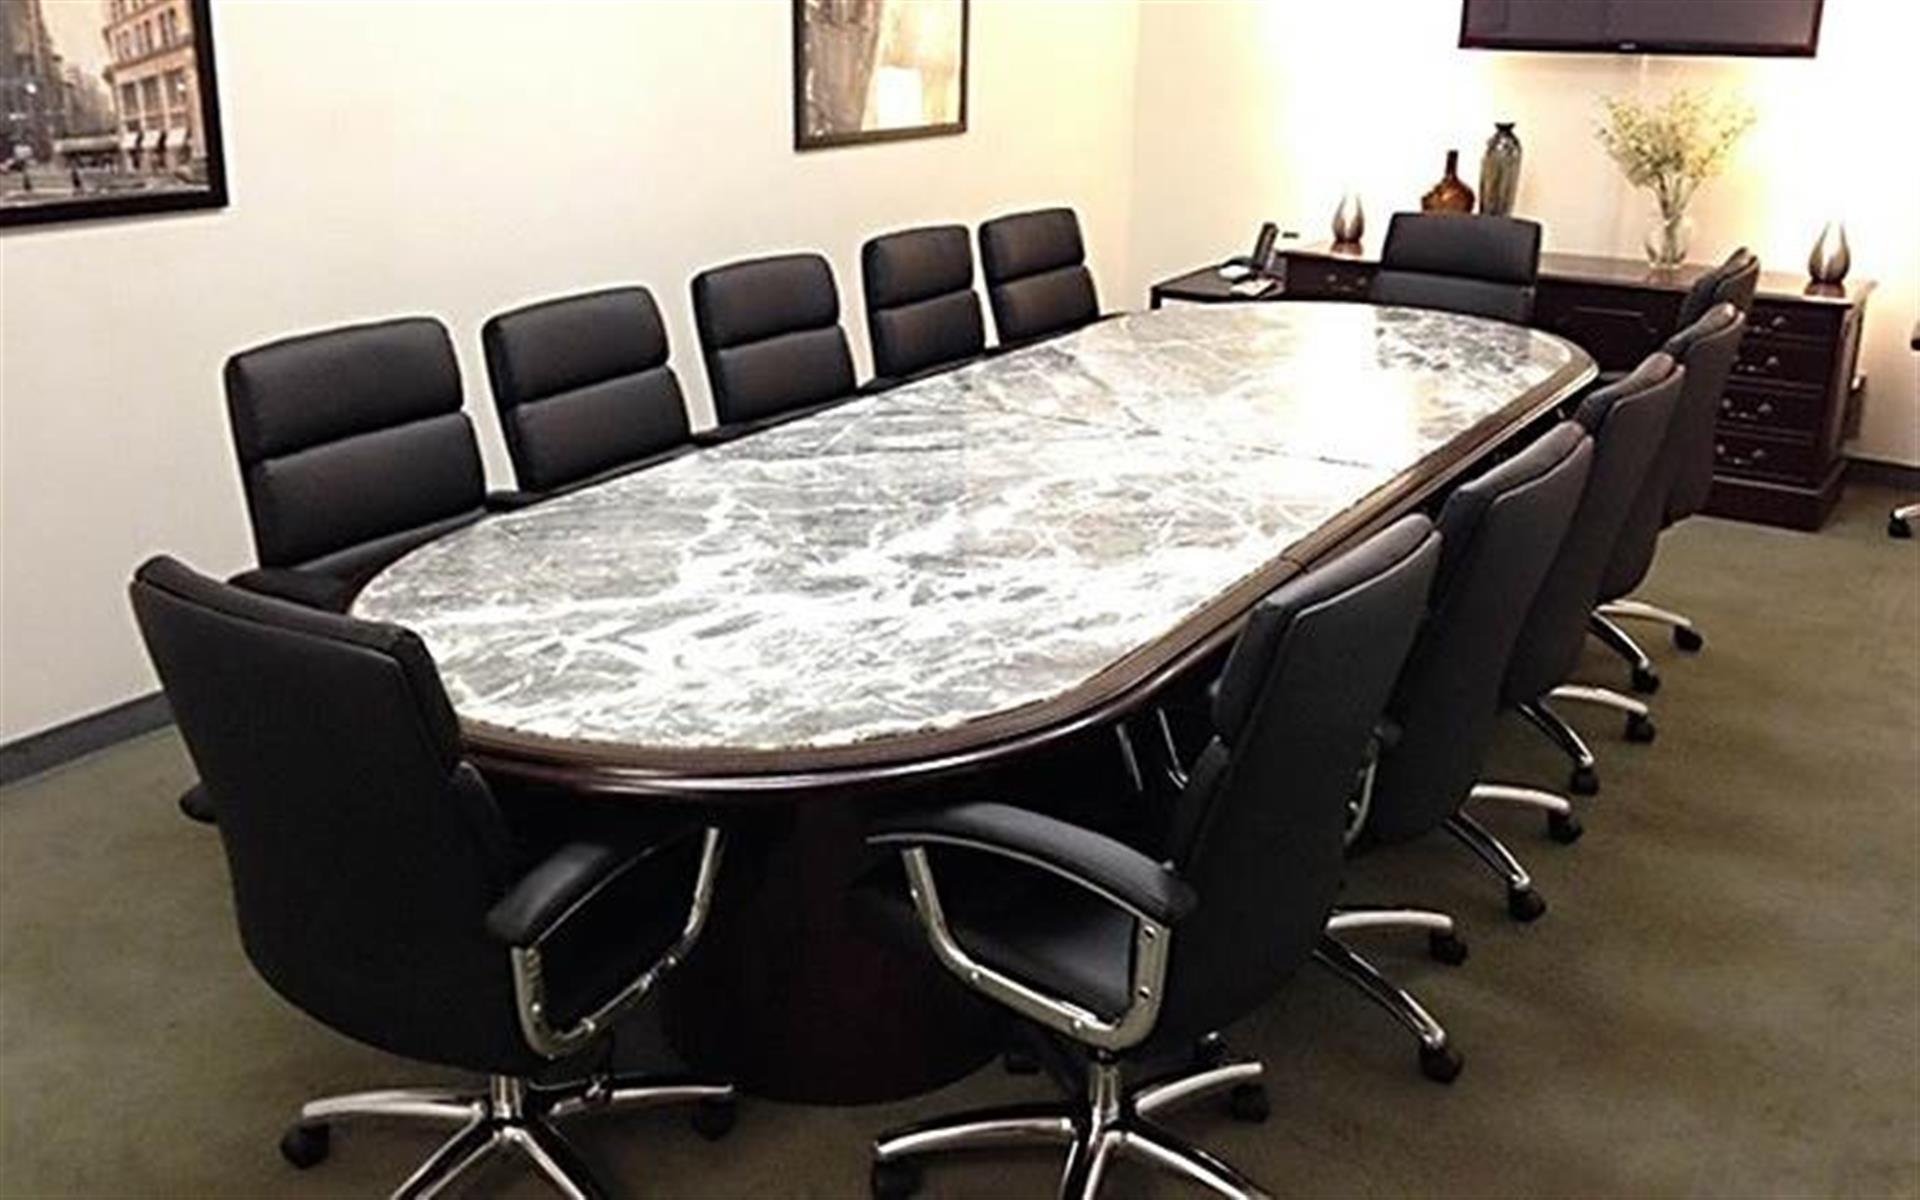 NYC Office Suites 708 (3rd Ave. & 44th) - Boardroom Event 708 (Cap. 18)